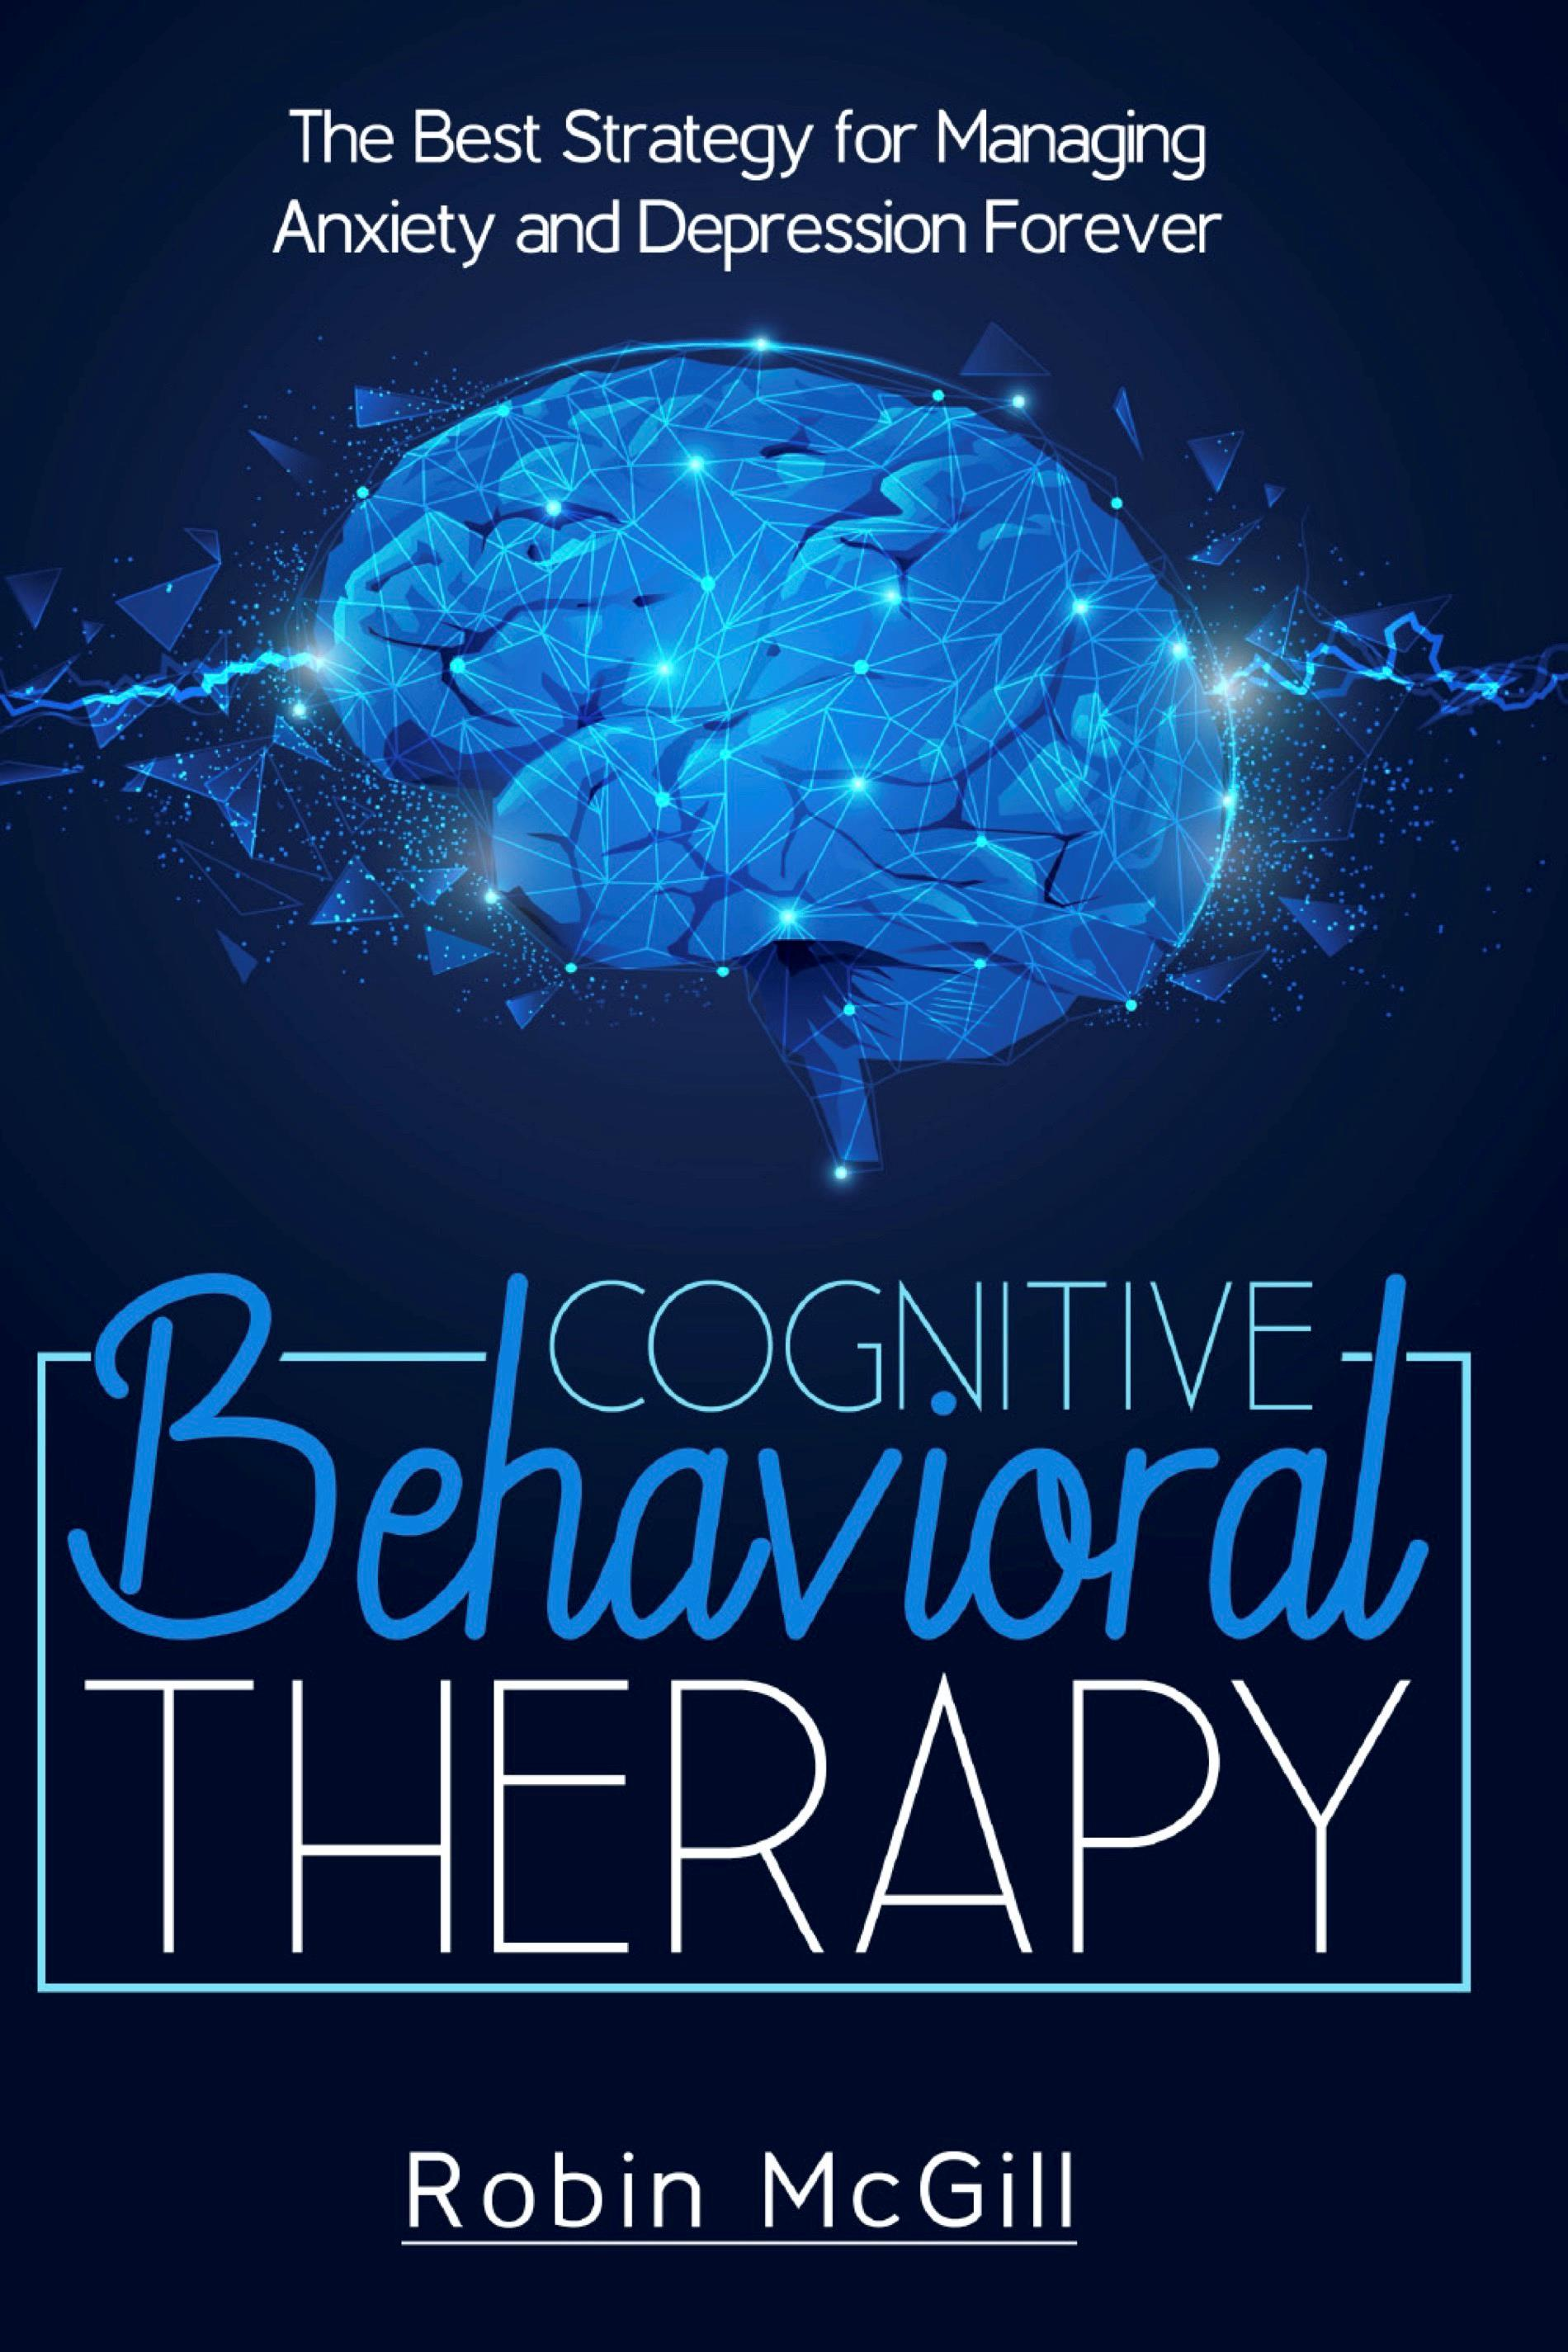 Cognitive Behavioral Therapy. The Best Strategy for Managing Anxiety and Depression Forever